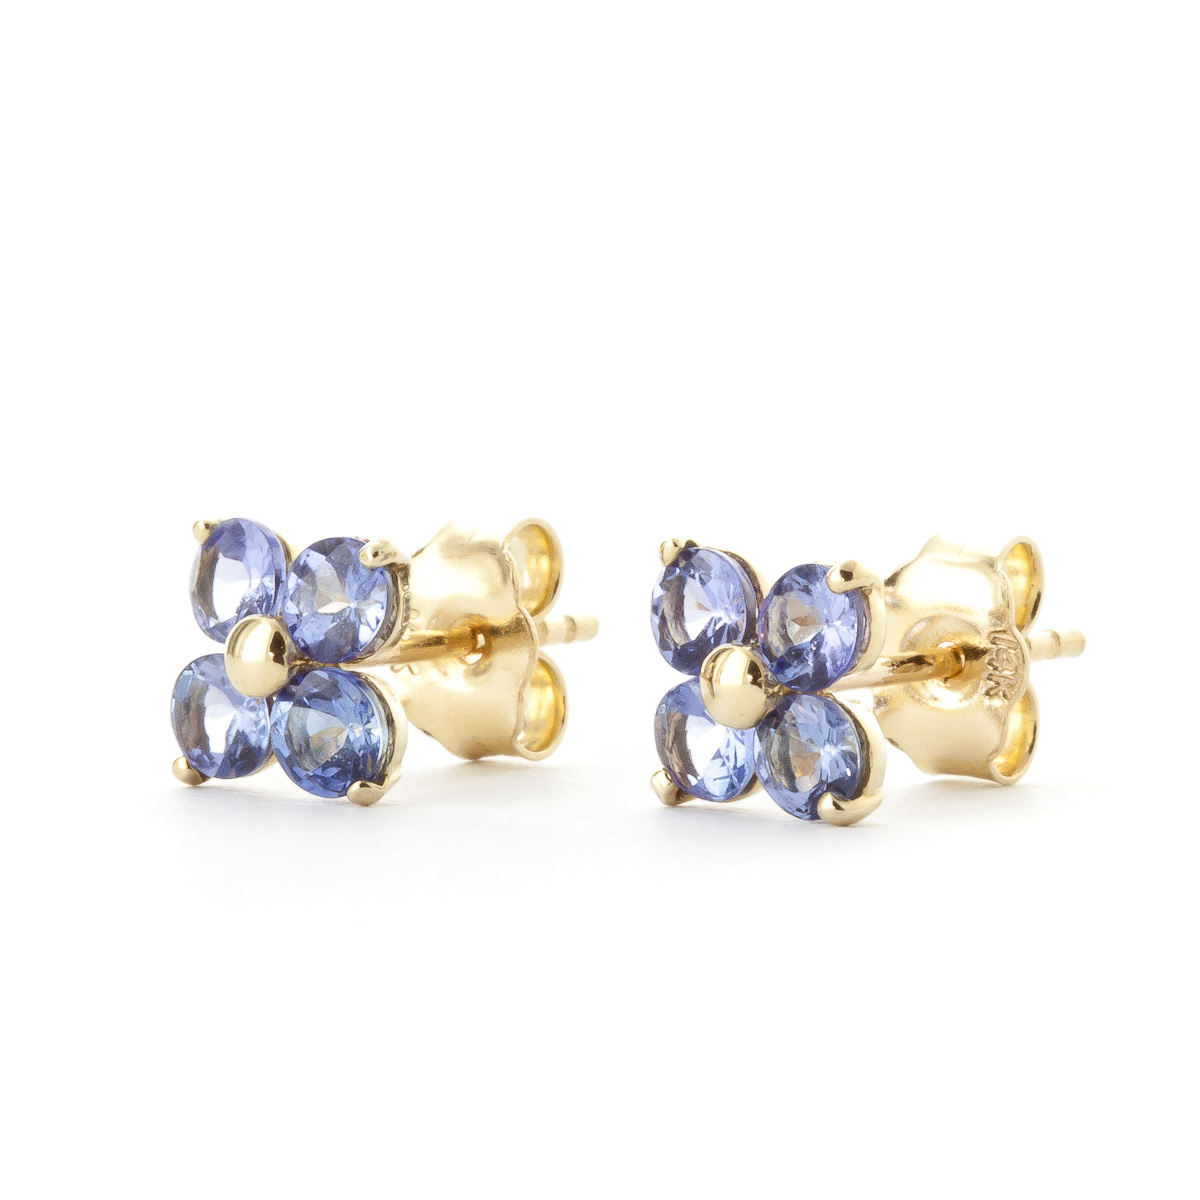 Tanzanite Clover Stud Earrings 1.15 ctw in 9ct Gold